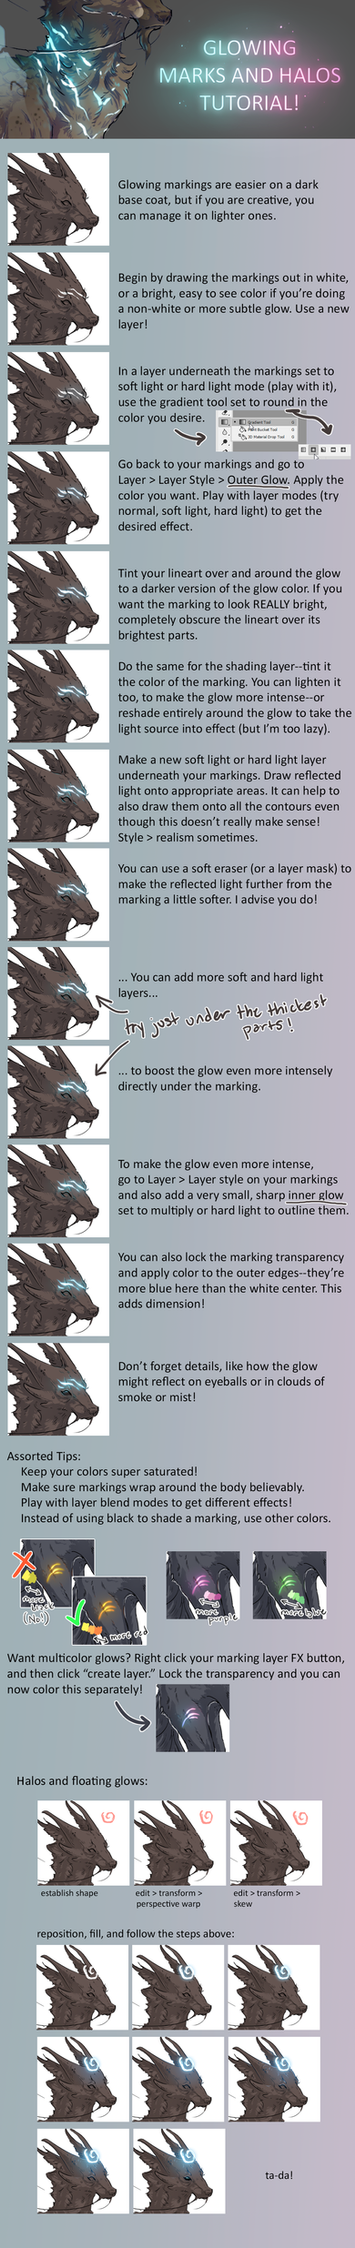 Glowing Marks and Halos tutorial for adoptables by rejamrejam